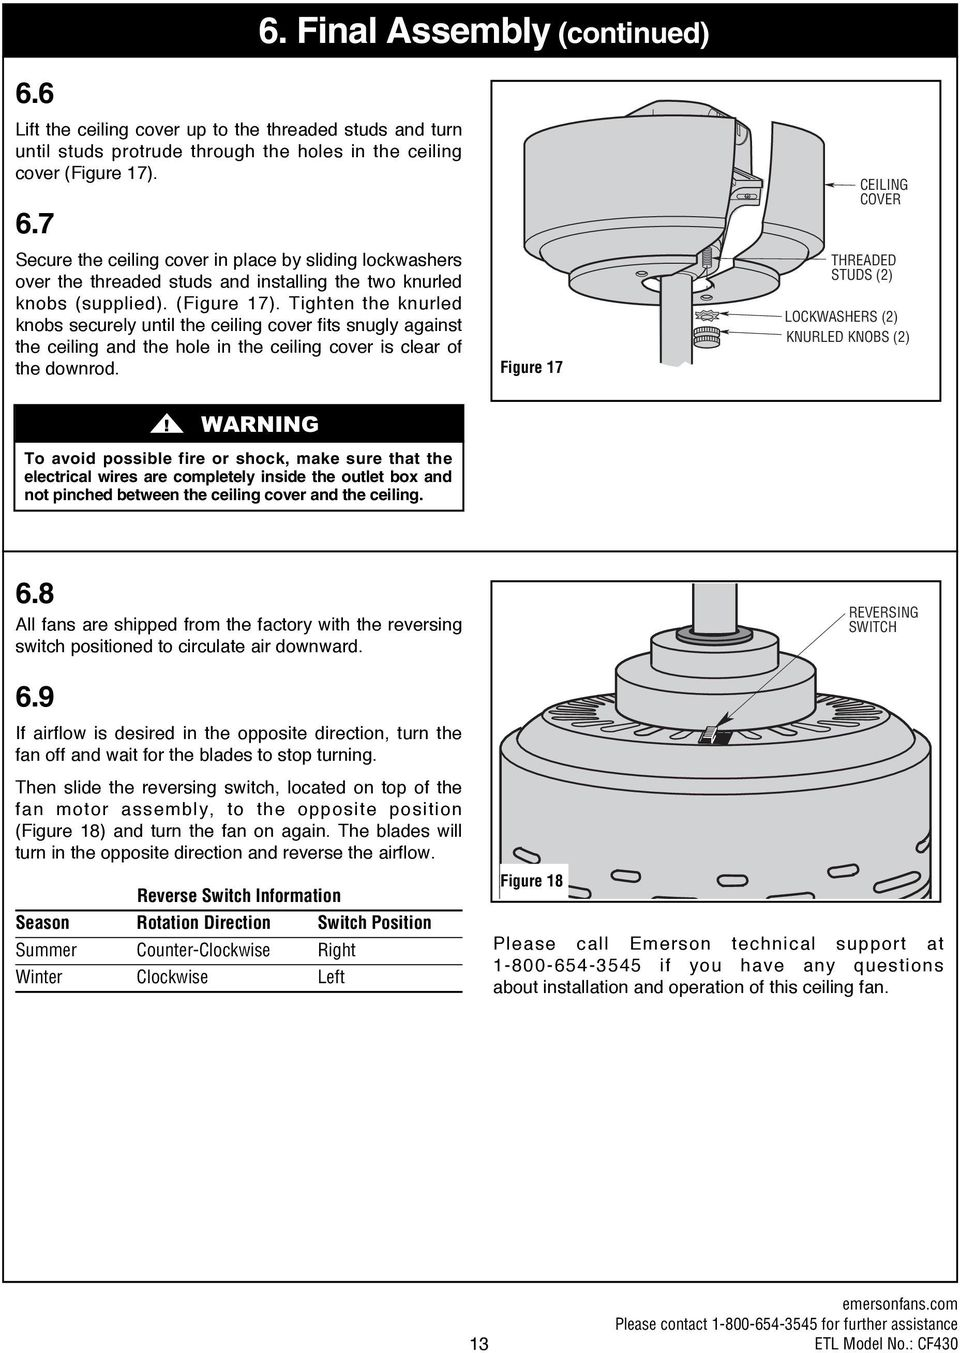 Figure 17 CEILING COVER THREADED STUDS (2) LOCKWASHERS (2) KNURLED KNOBS (2) To avoid possible fire or shock, make sure that the electrical wires are completely inside the outlet box and not pinched